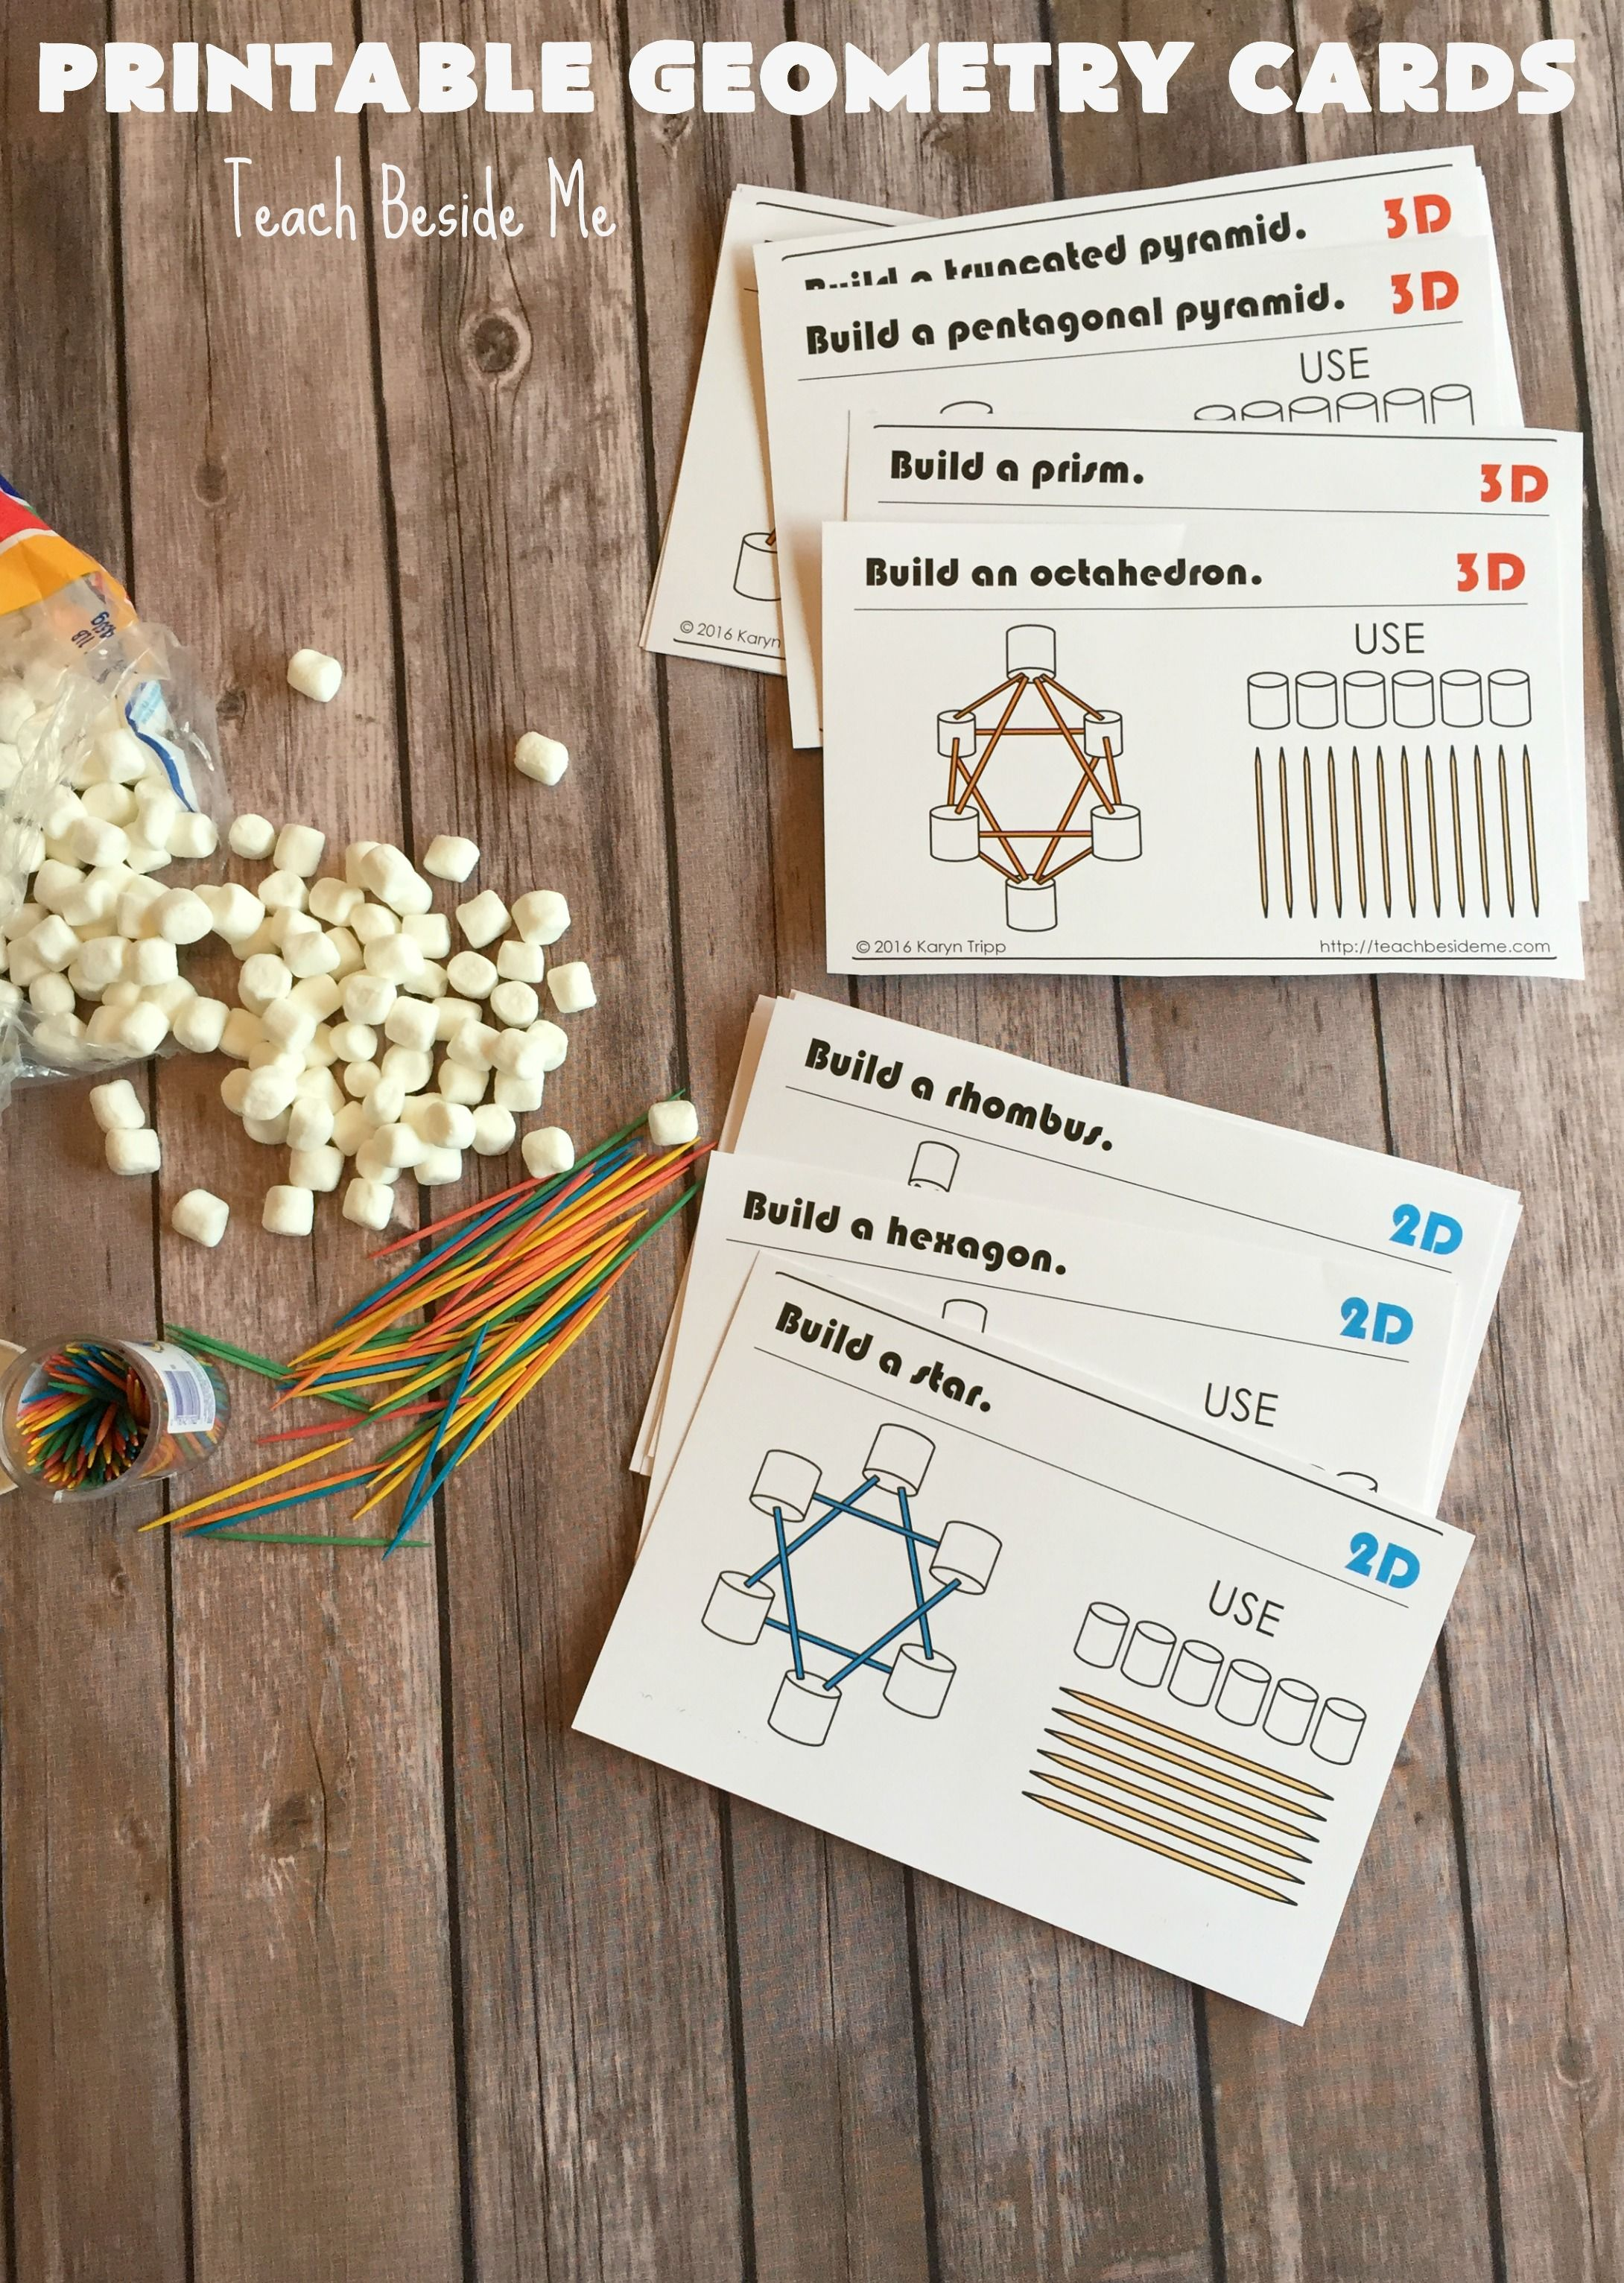 22 Printable Marshmallow And Toothpick Geometry Cards